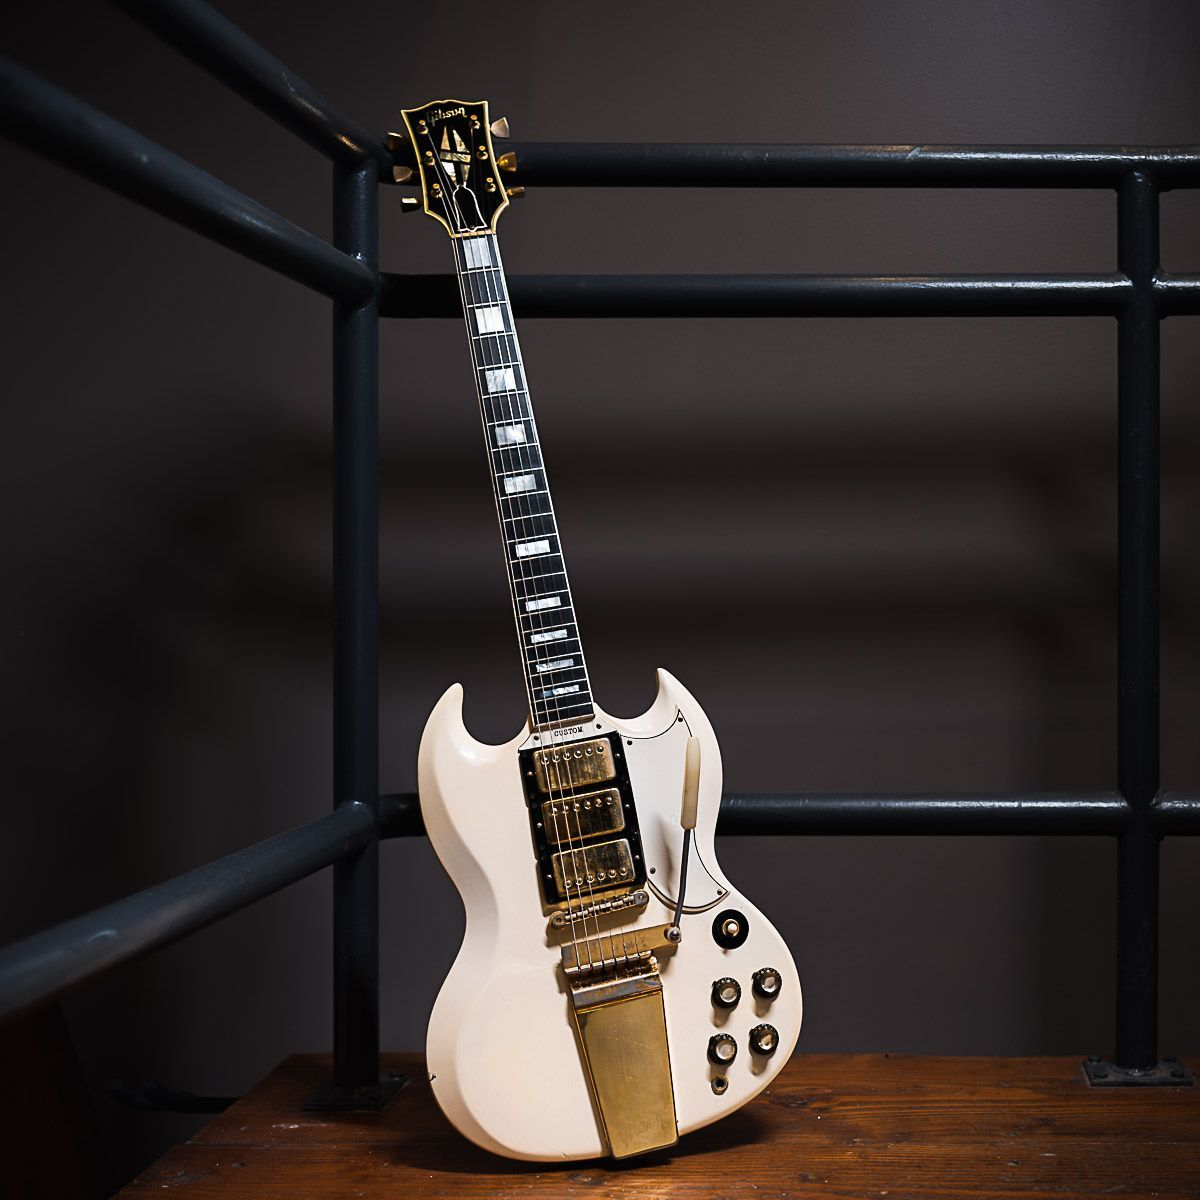 A Closer Looks At The Insanely Rad 65 Polaris White Gibsonguitar Sg Custom We Just Got In This Is Seriously One Of The Vintage Bass Guitars Guitar Sg Guitar